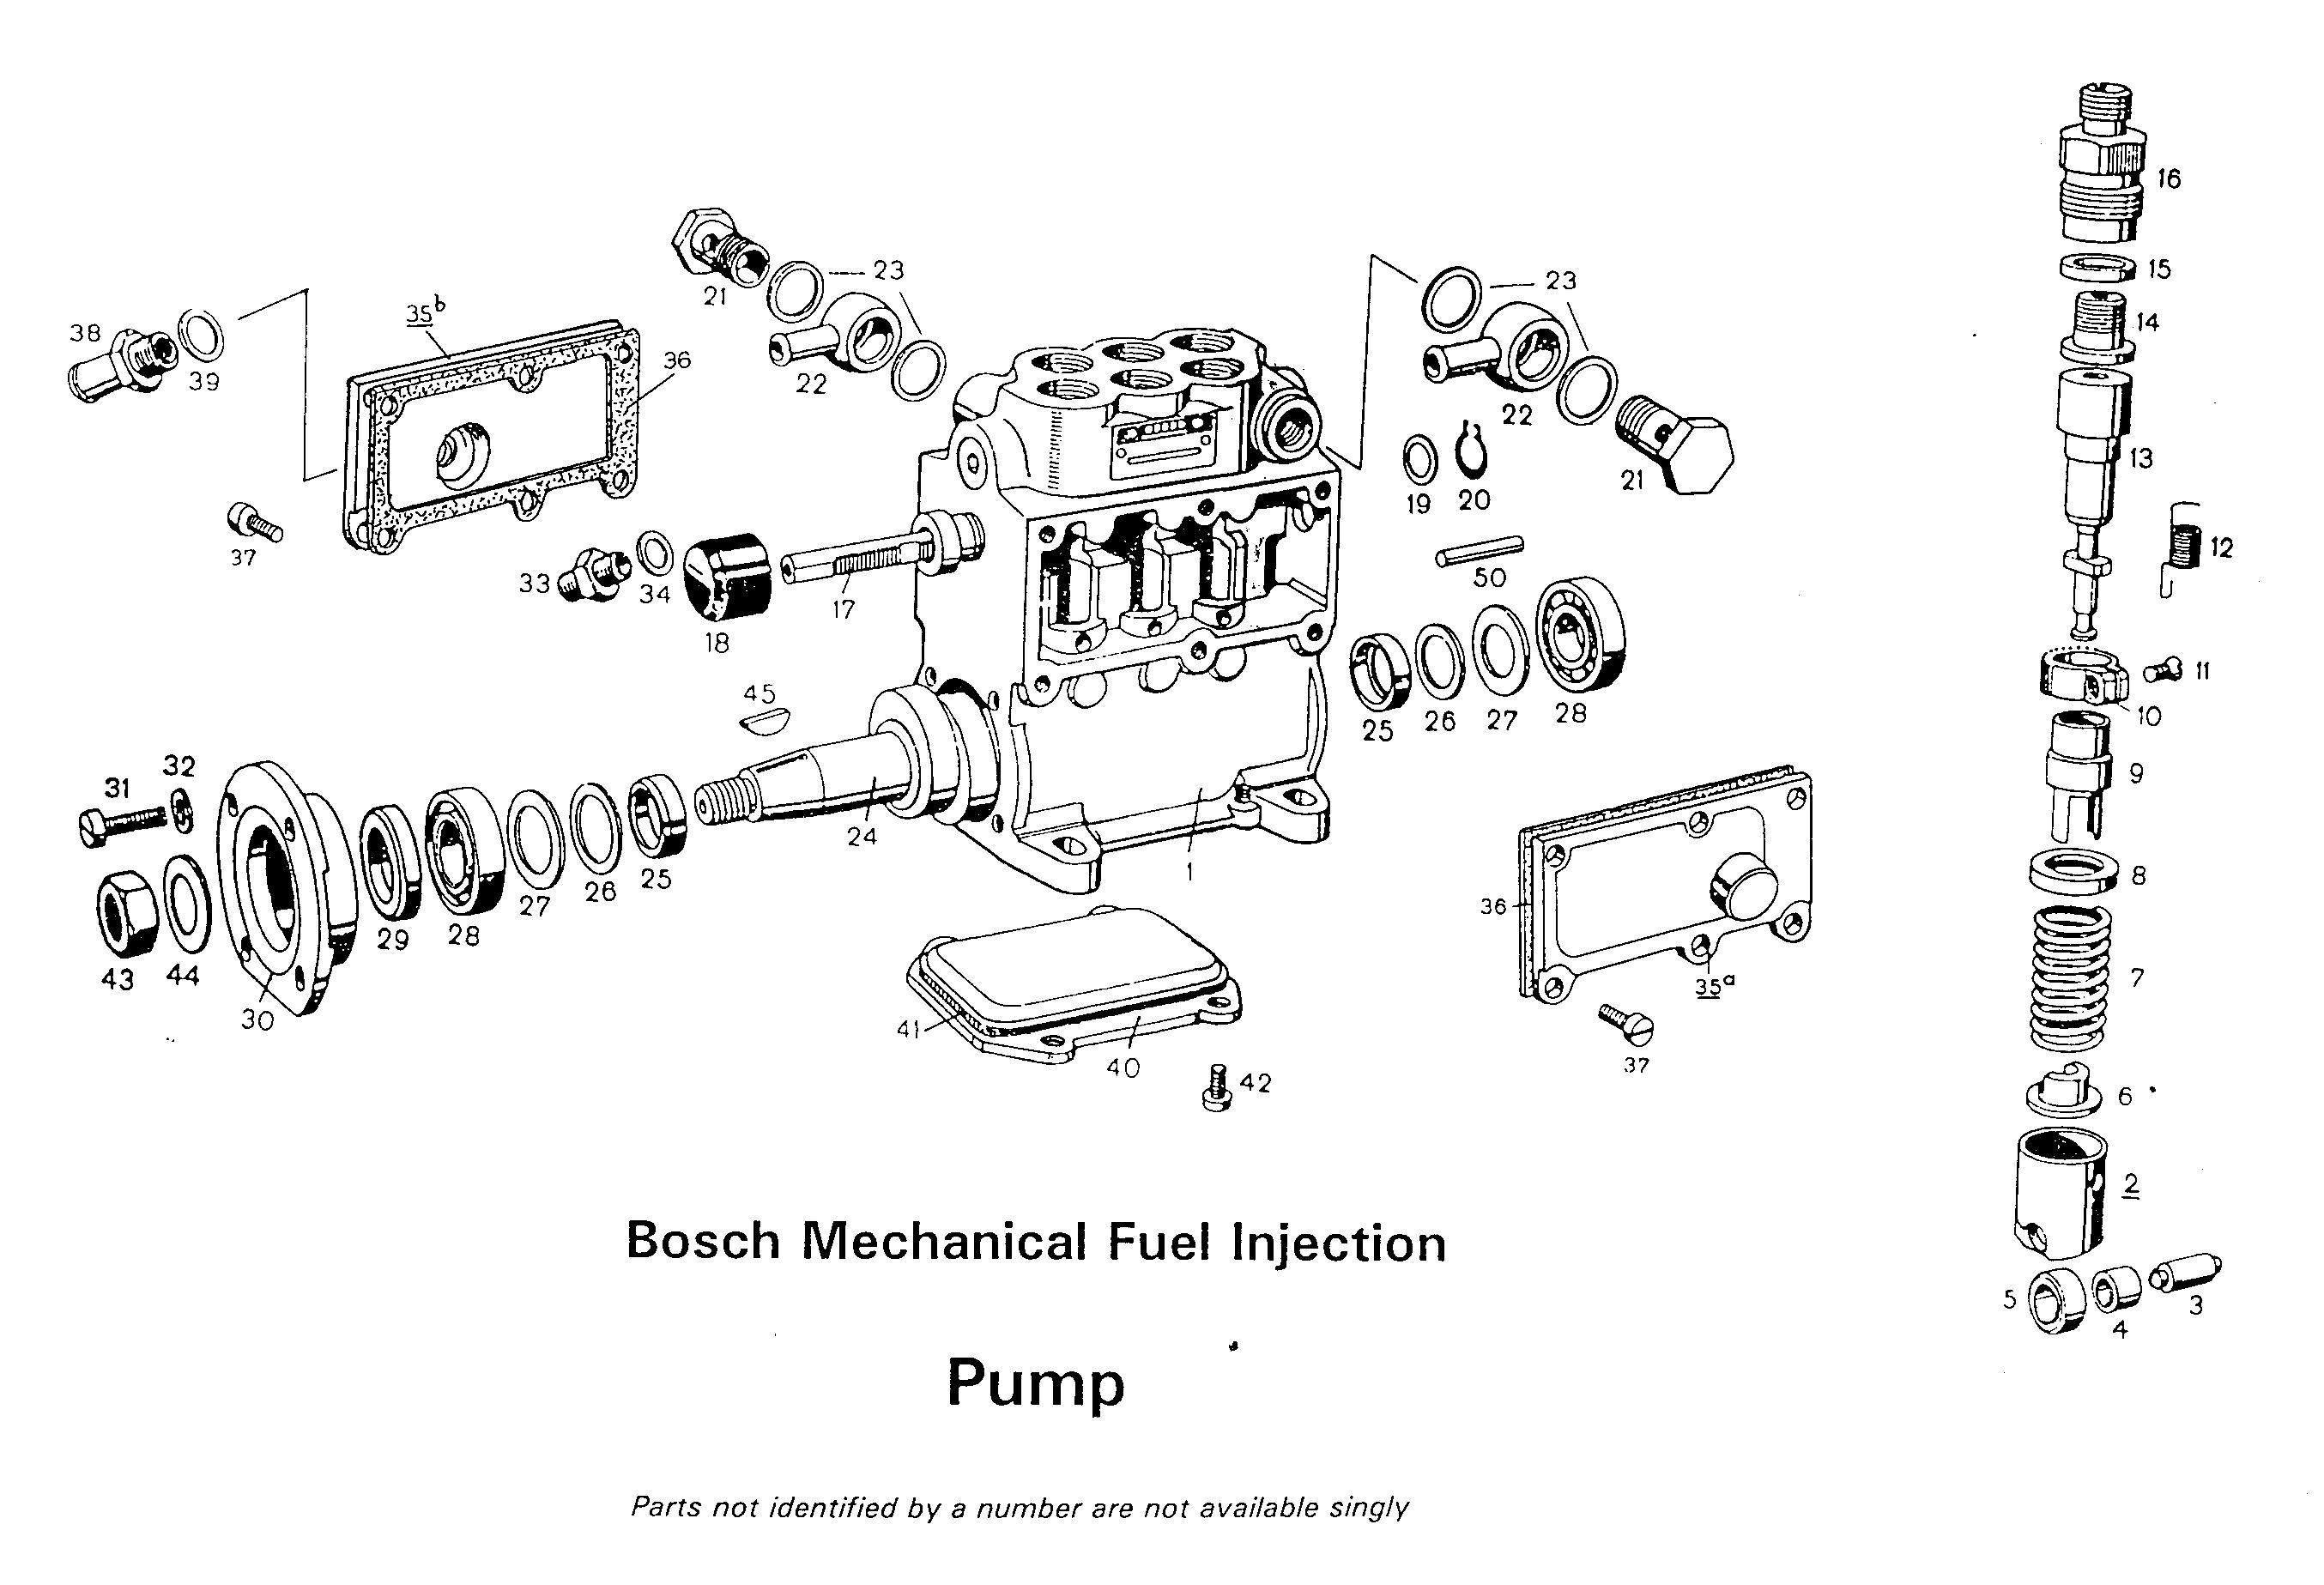 diesel injection spare parts diesel injection pump parts besides fuel injection pump delivery valve robert bosch engine 6466 besides parts for case w14fl wheel loaders moreover wholesale electronic fuel injection parts auto injector bosch furthermore usdiesel us diesel fuel injection replacement parts tools. on bosch fuel injector parts list